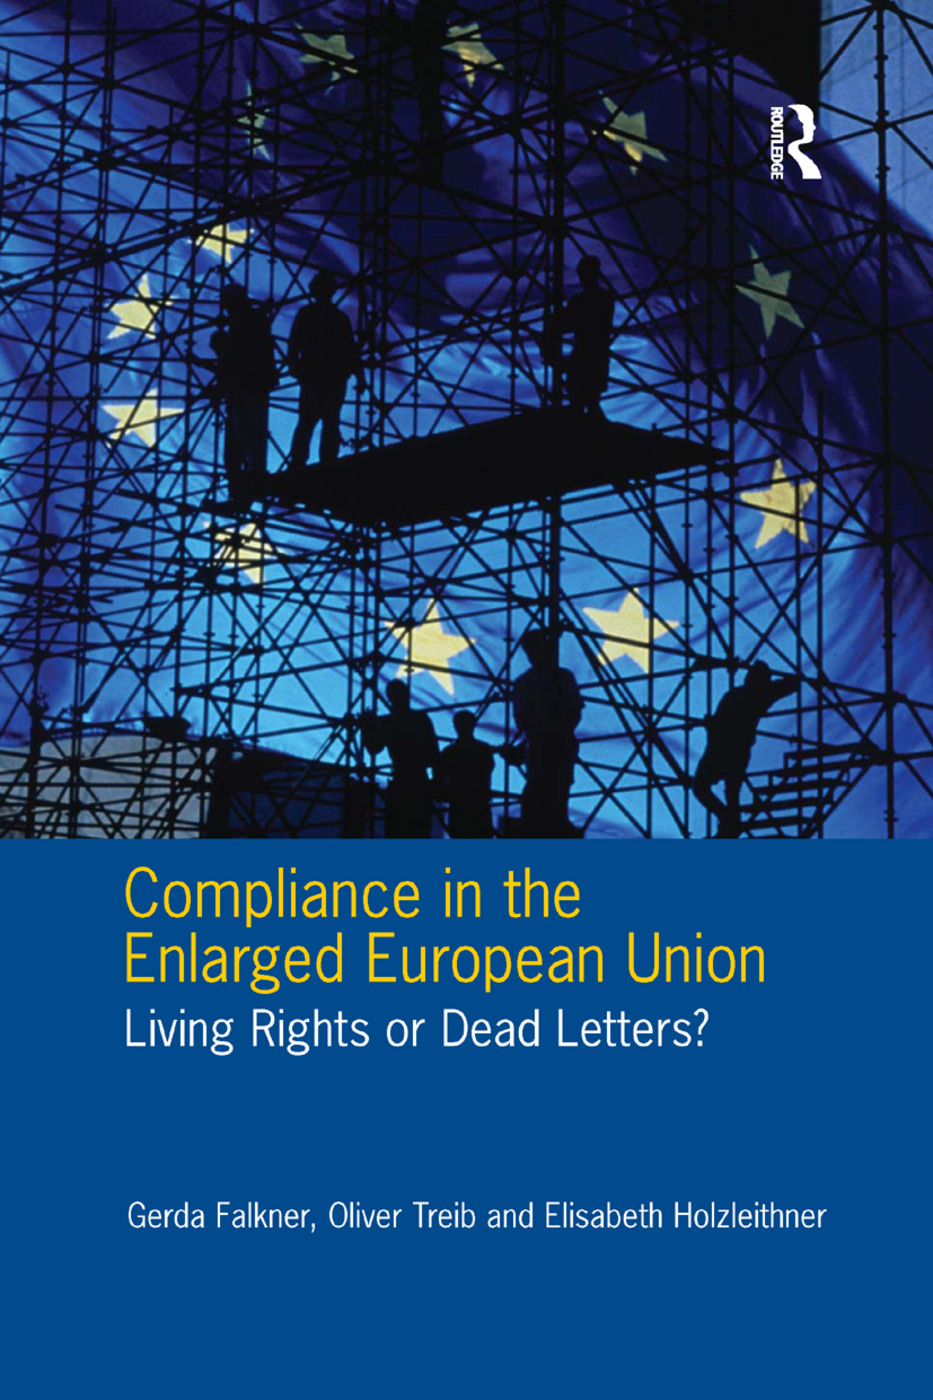 Compliance in the Enlarged European Union: Living Rights or Dead Letters? book cover